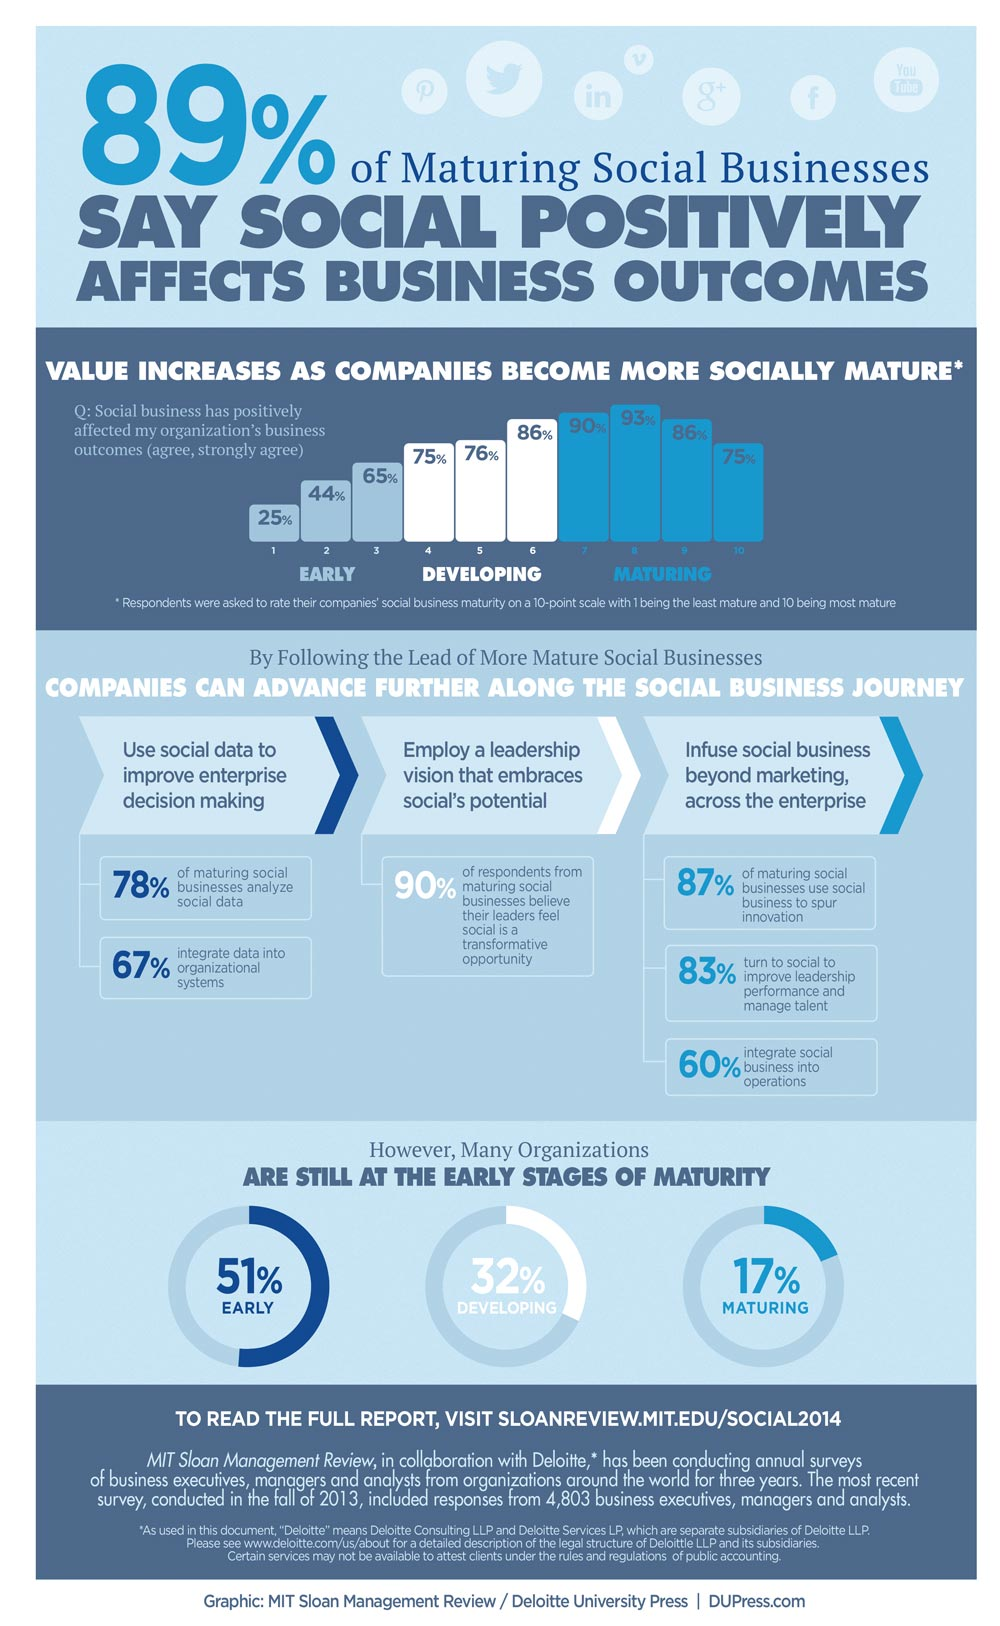 Moving beyond marketing: Generating social business value across the enterprise